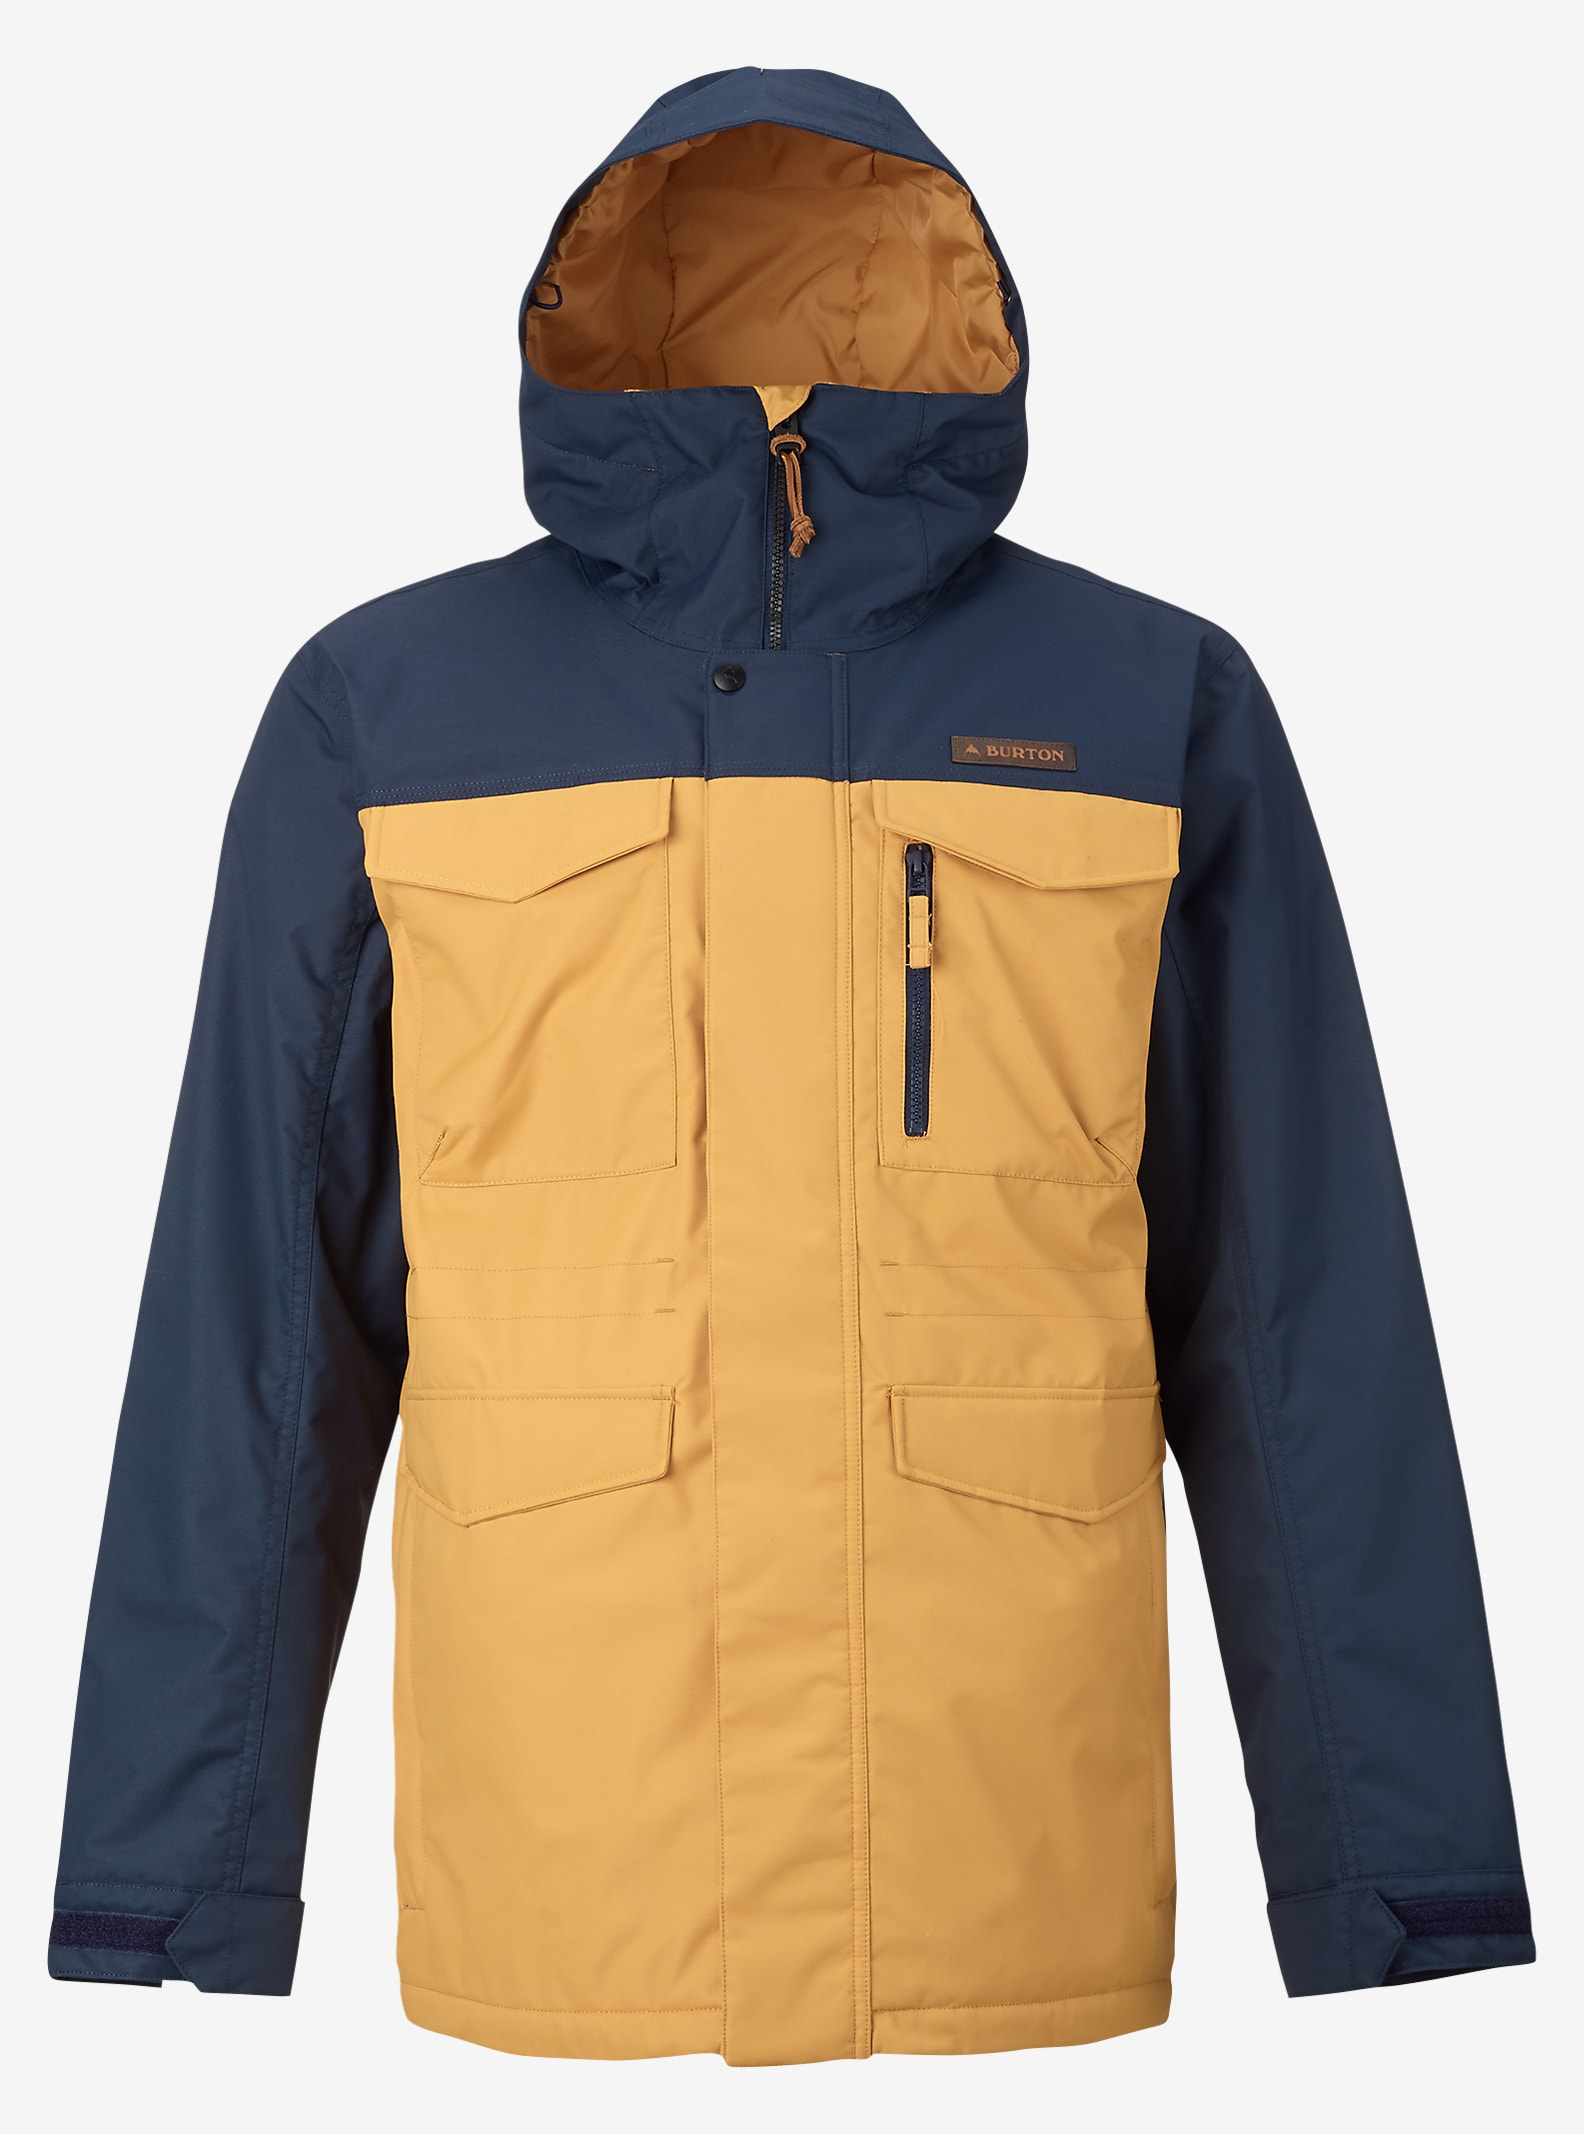 Burton Covert Jacket shown in Eclipse / Syrup